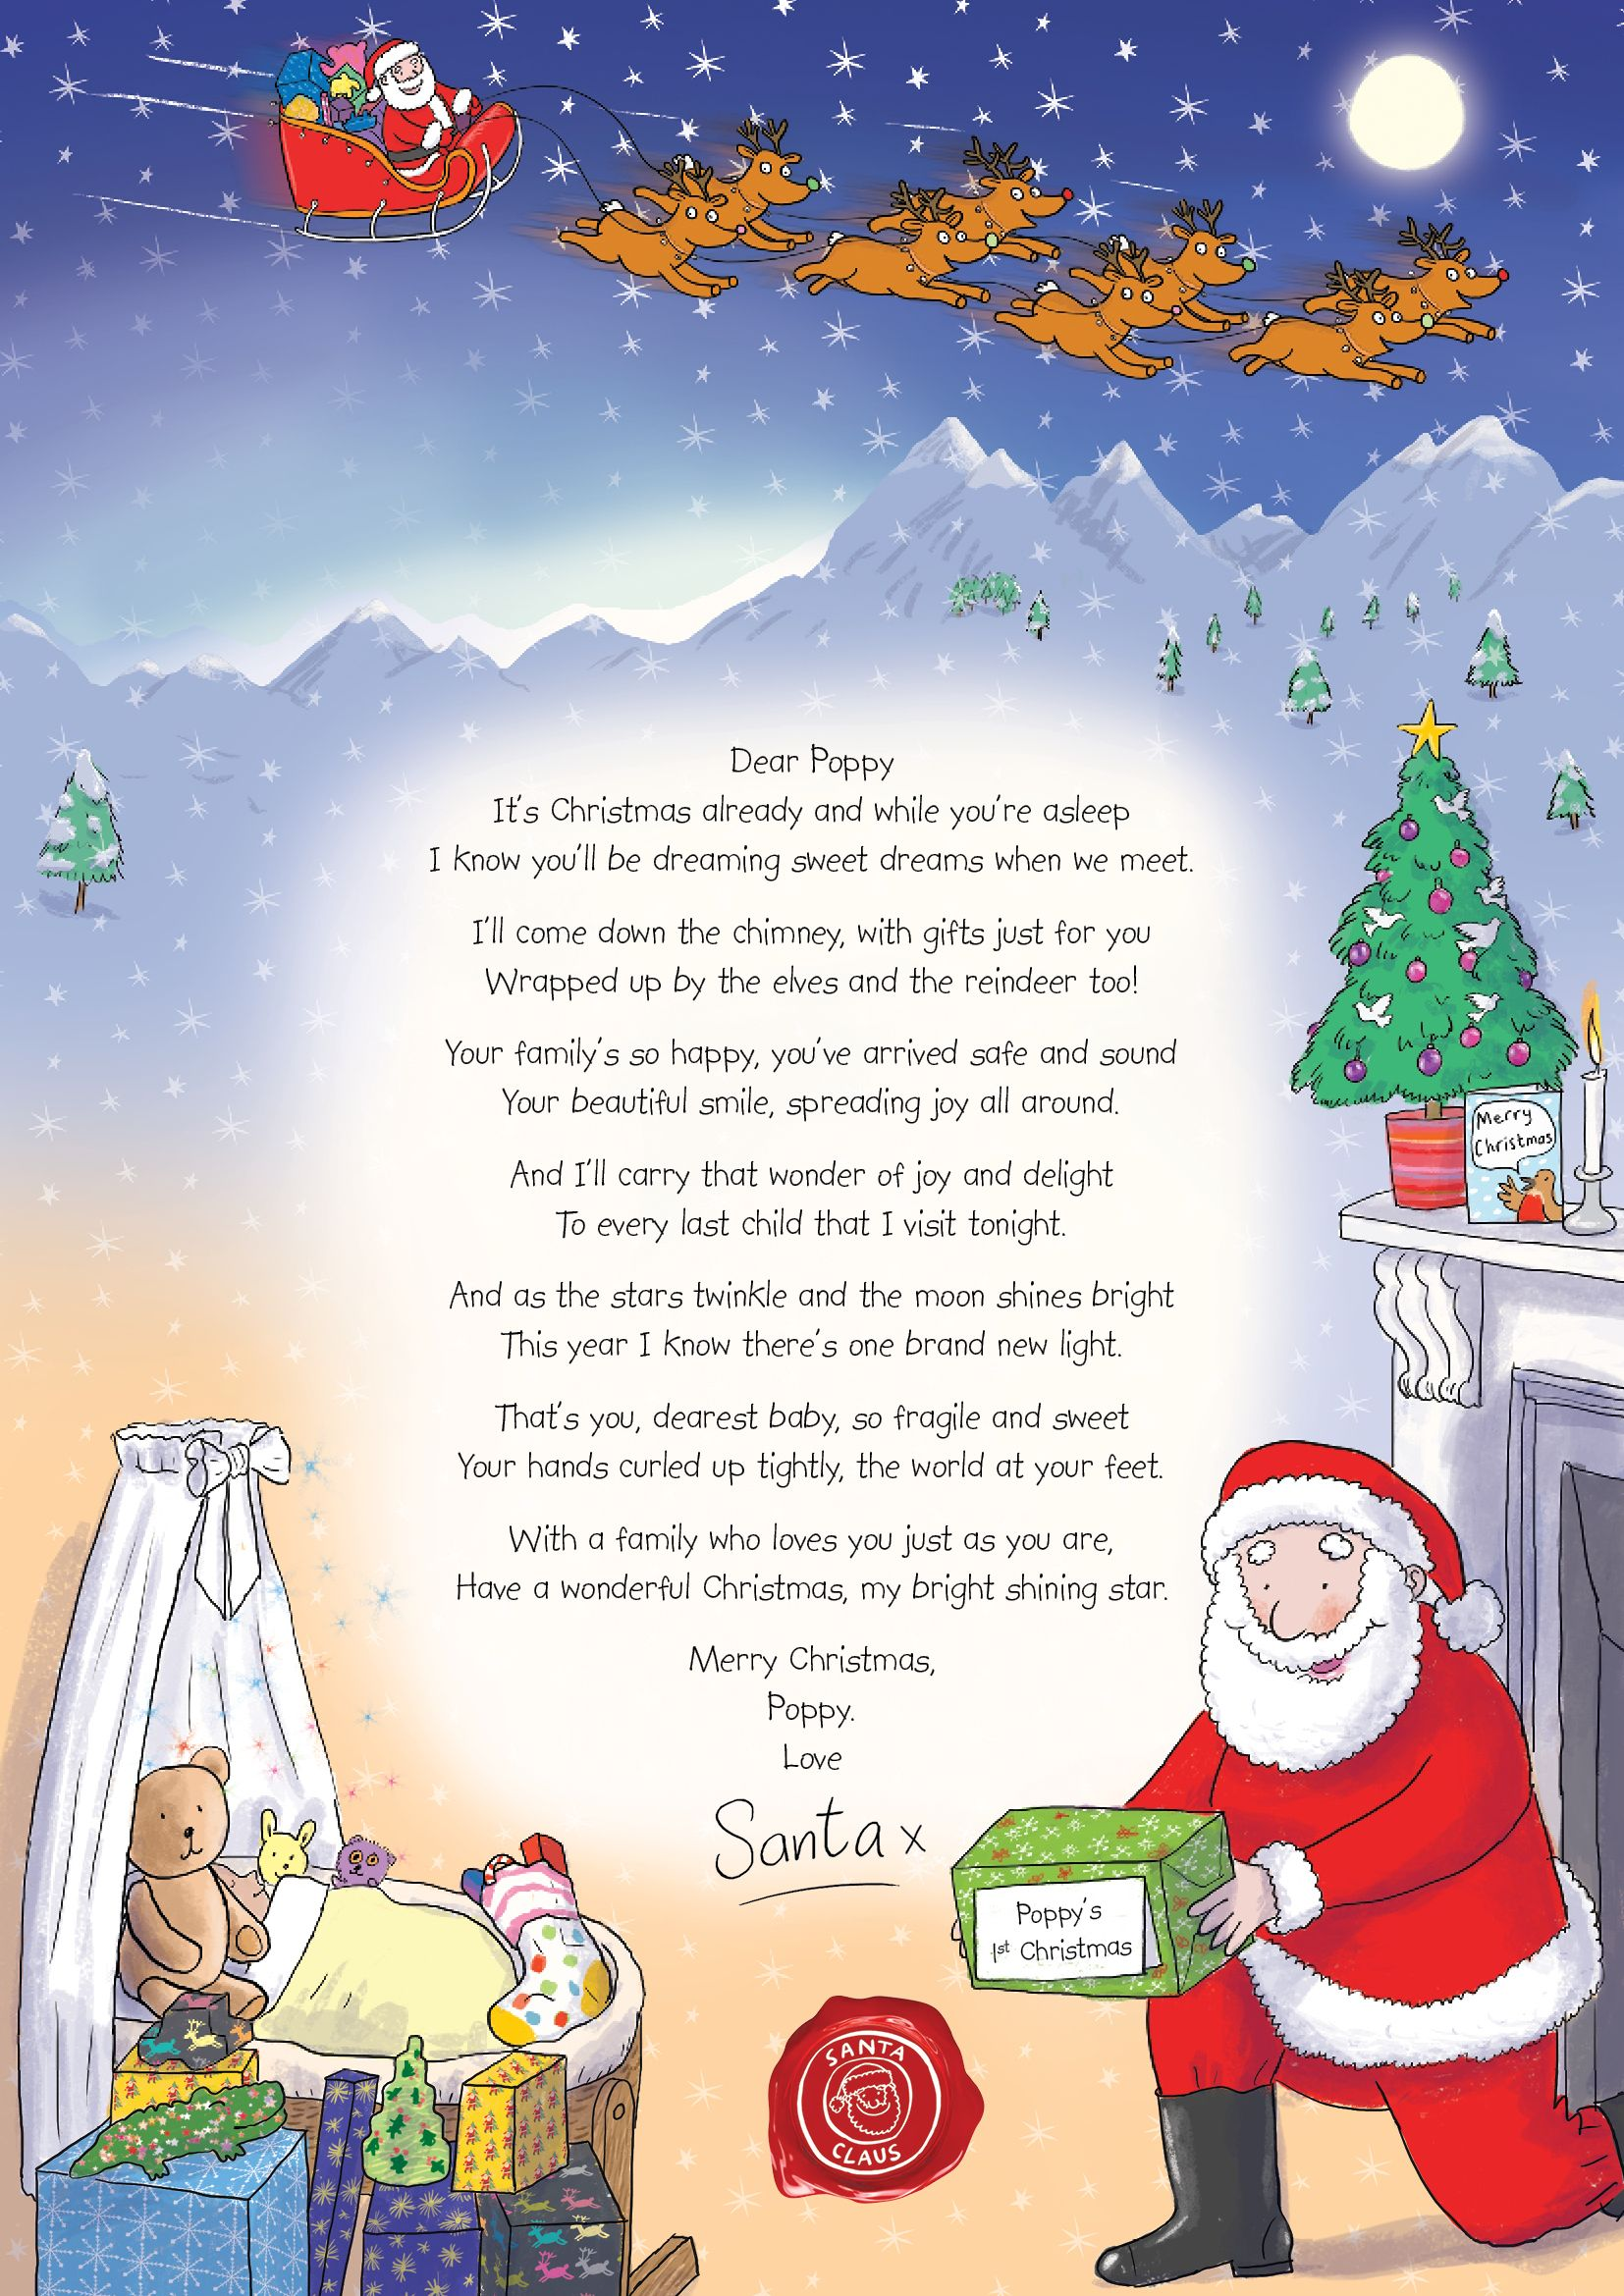 Nspcc letter from santa santa can even write a special letter to nspcc letter from santa santa can even write a special letter to celebrate spiritdancerdesigns Gallery